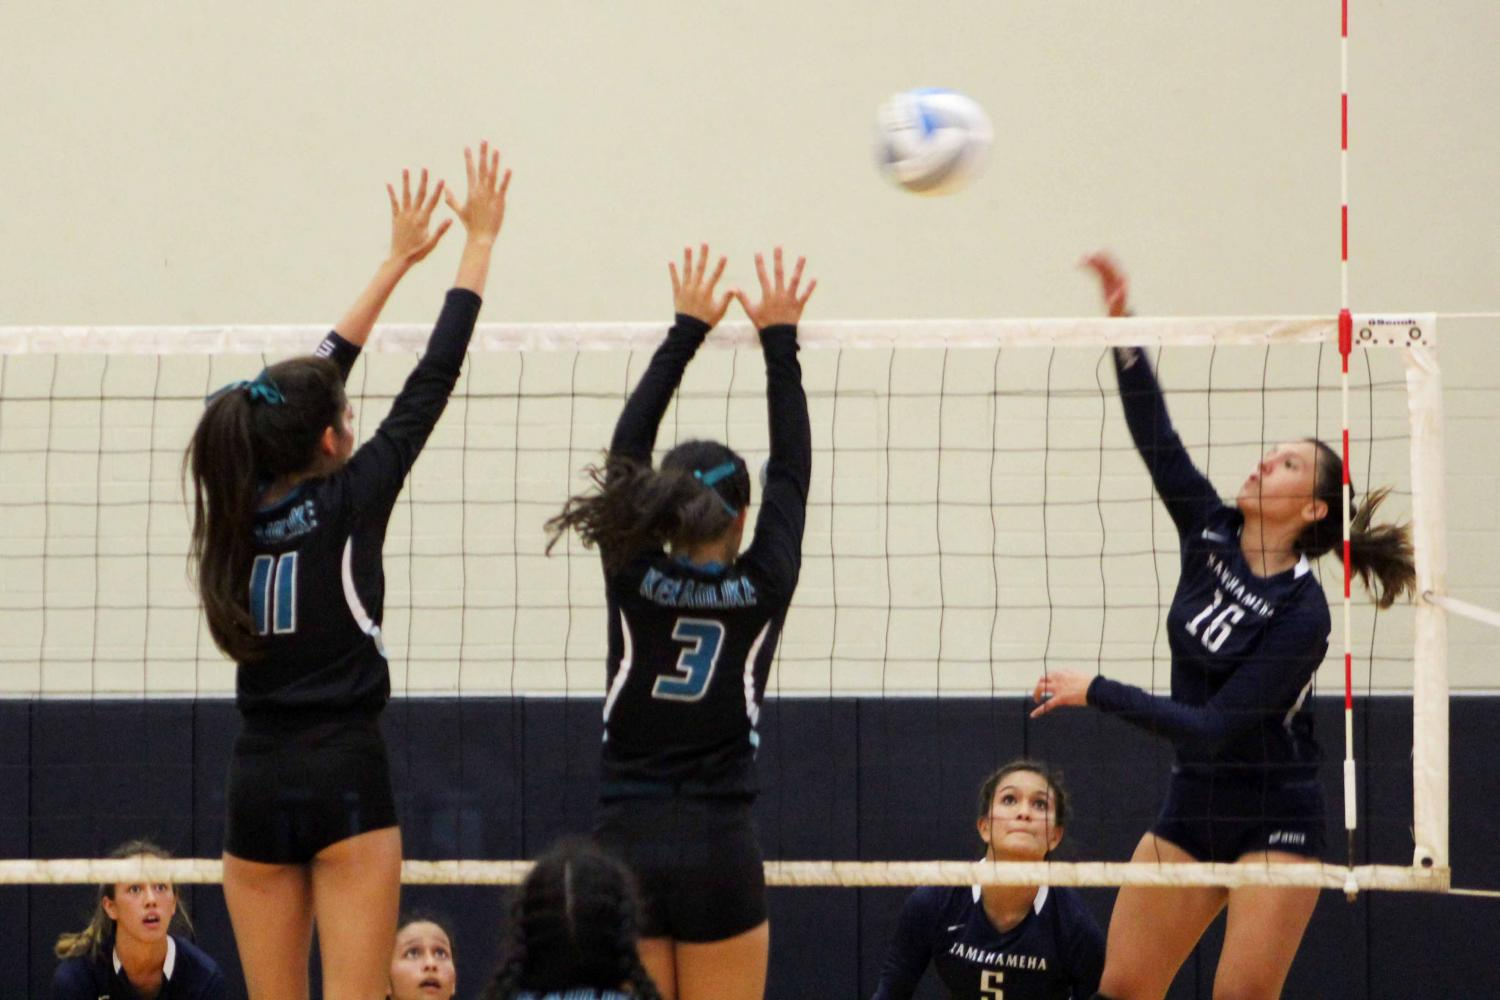 Kamehameha Maui junior Alea Cervantes hits the ball past Nā Aliʻi blockers. Warriors defeated Nā Aliʻi in girls volleyball, 3-1, at King Kekaulikeʻs gymnasium. Aug. 29.